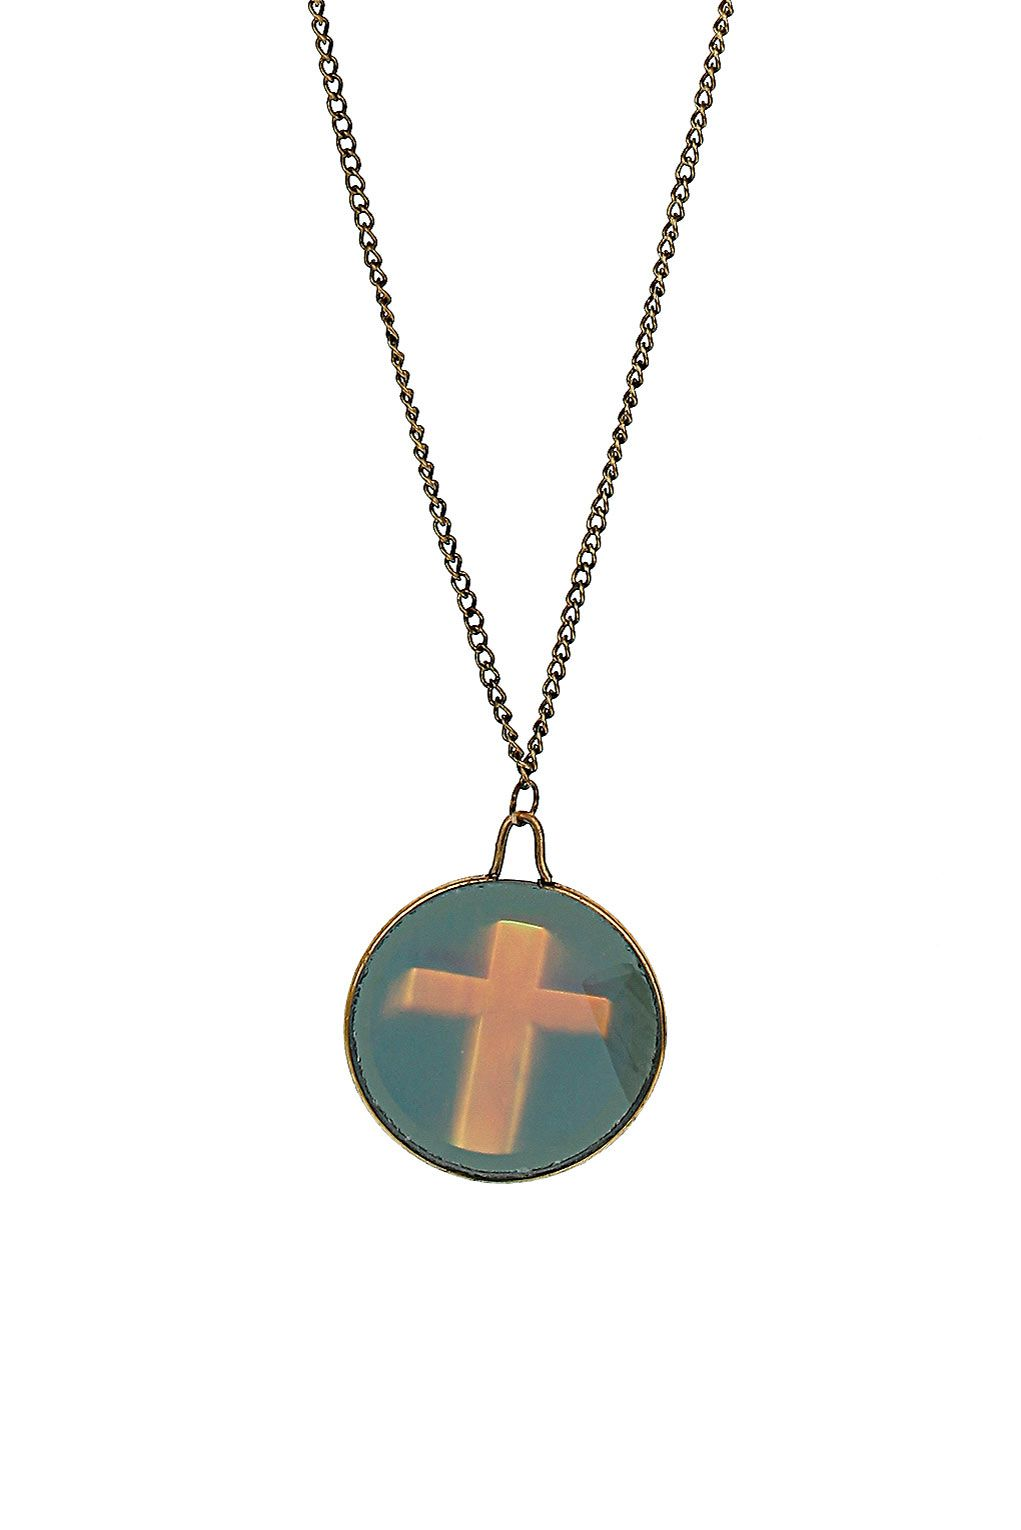 Cross hologram necklace price products we love pinterest